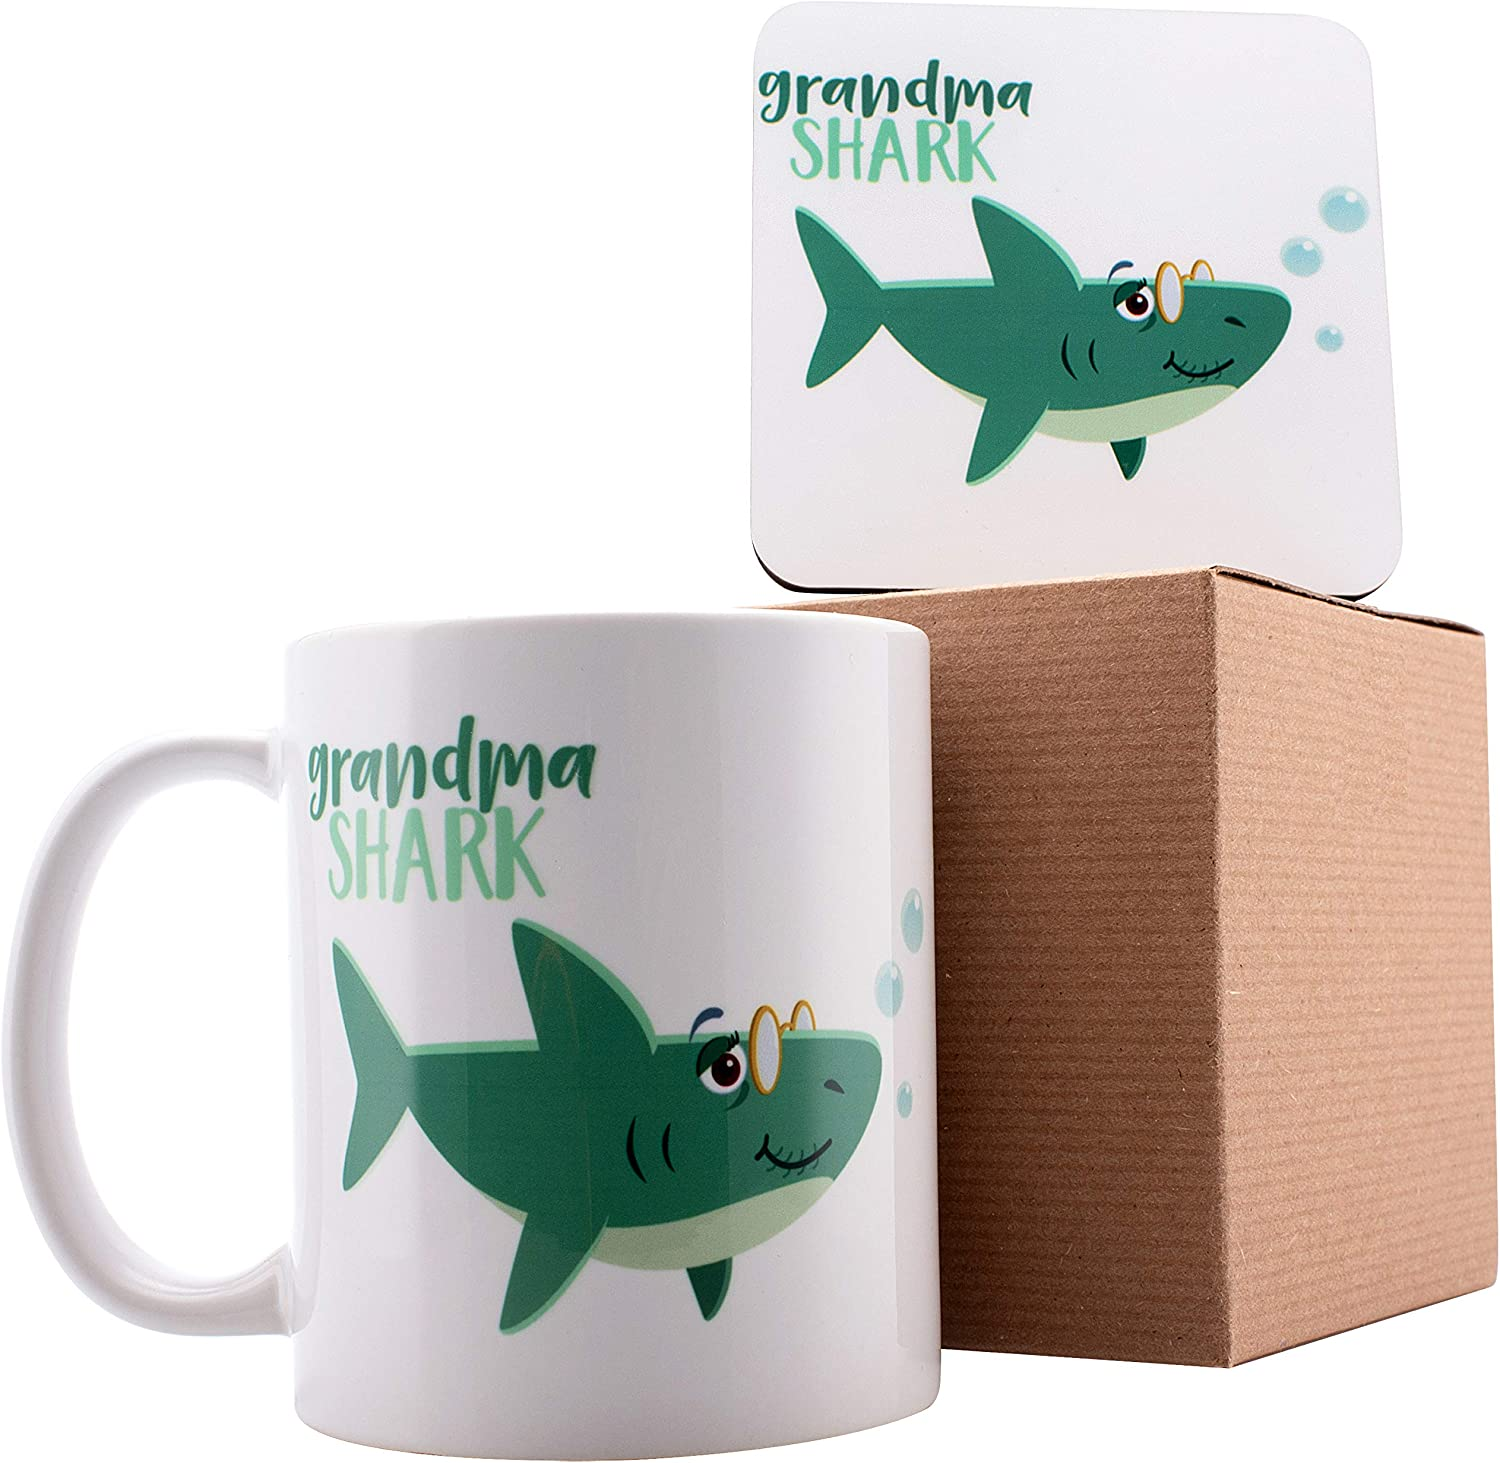 "Grandma Shark Coffee Mug with Matching Coaster, Shark Family Coffee Mugs - 11oz Ceramic Mugs - Birthday Gifts, Mother""s Day Gifts, Fathers Day Gifts, Christmas Gifts"